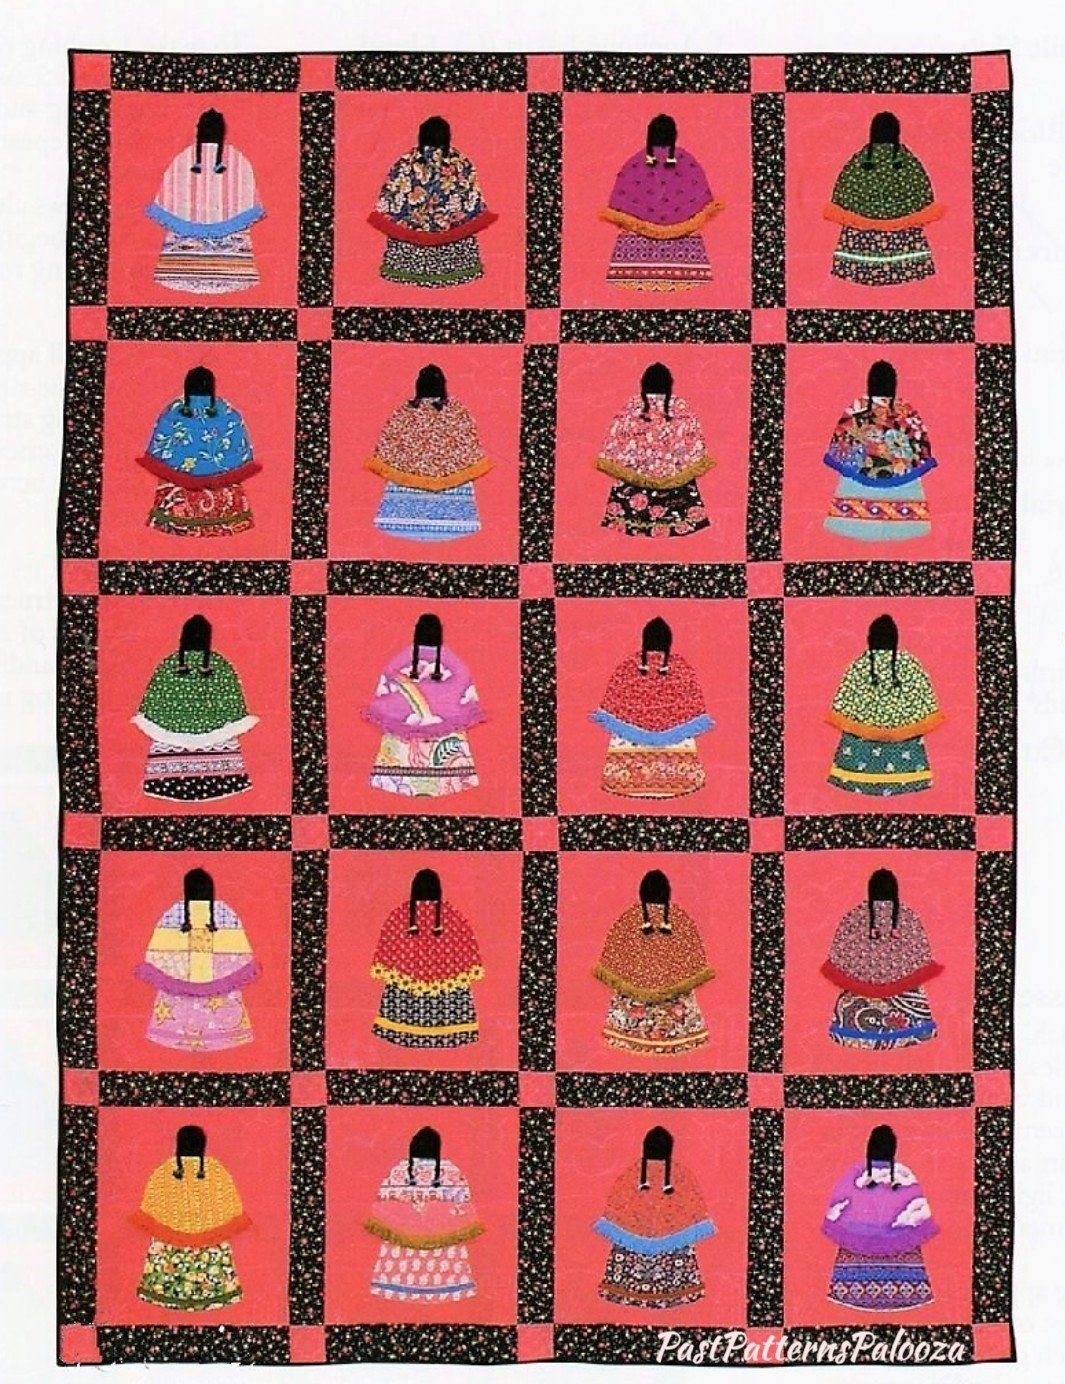 Vintage Sewing Pattern Native American Little Indian Girls Bed Quilt PDF Instant Digital Download Patchwork Applique Block Sunbonnet Variant #indianbeddoll